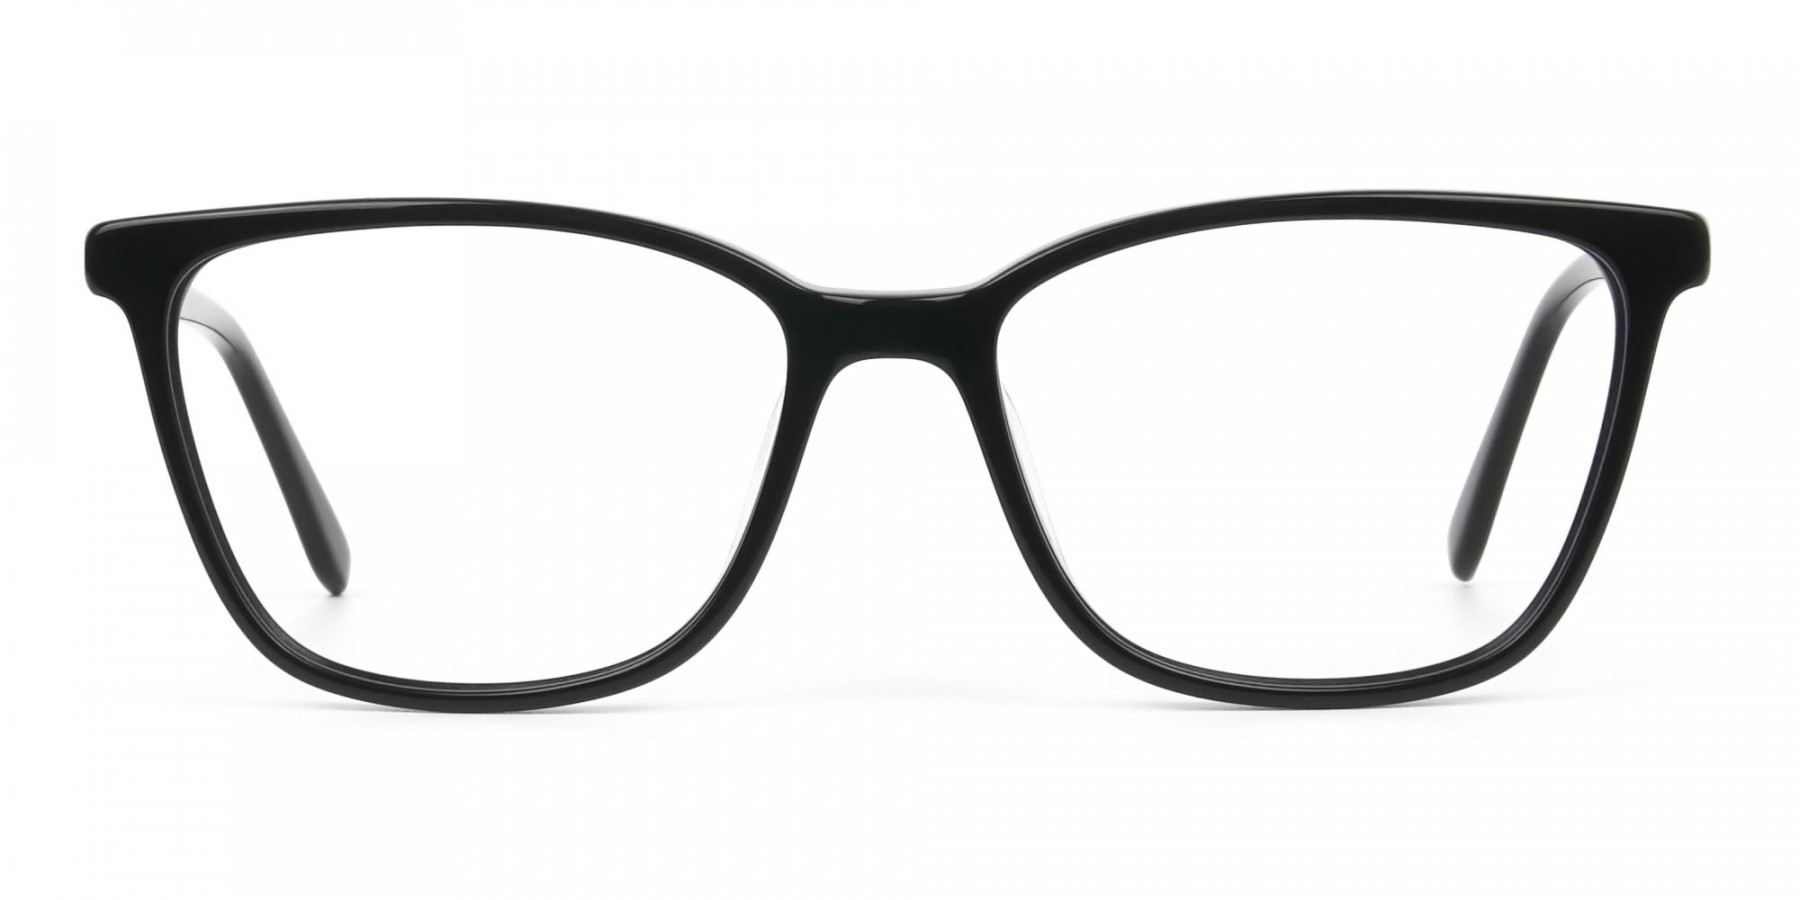 Women Nerd Black Acetate Spectacles in Rectangular - 1